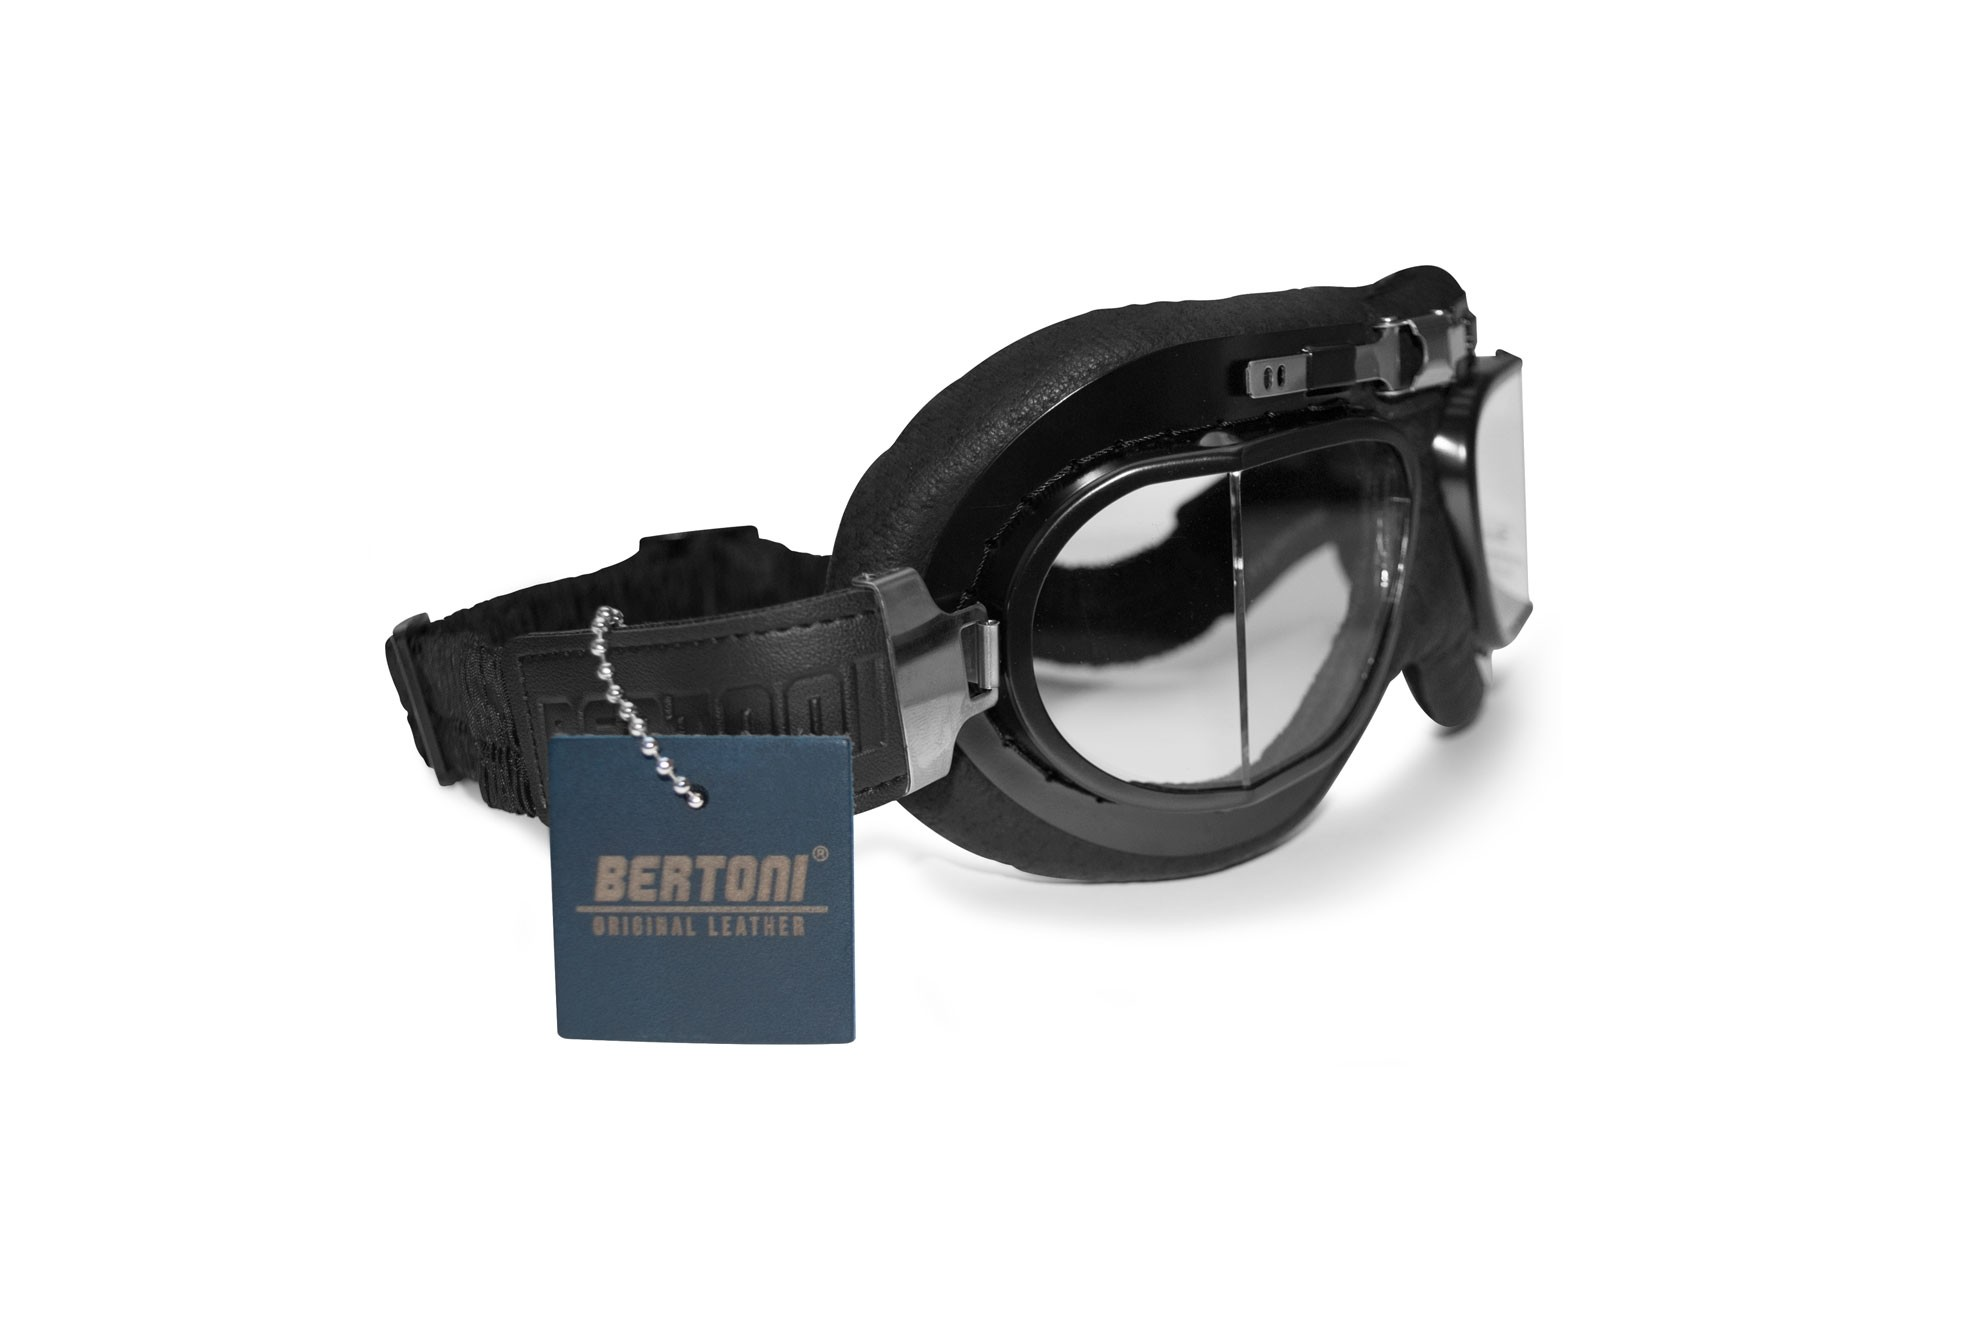 Motorcycle Goggles Real Black Calfskin Leather by Bertoni Italy - AF193L Vintage Aviator Bikers Goggles